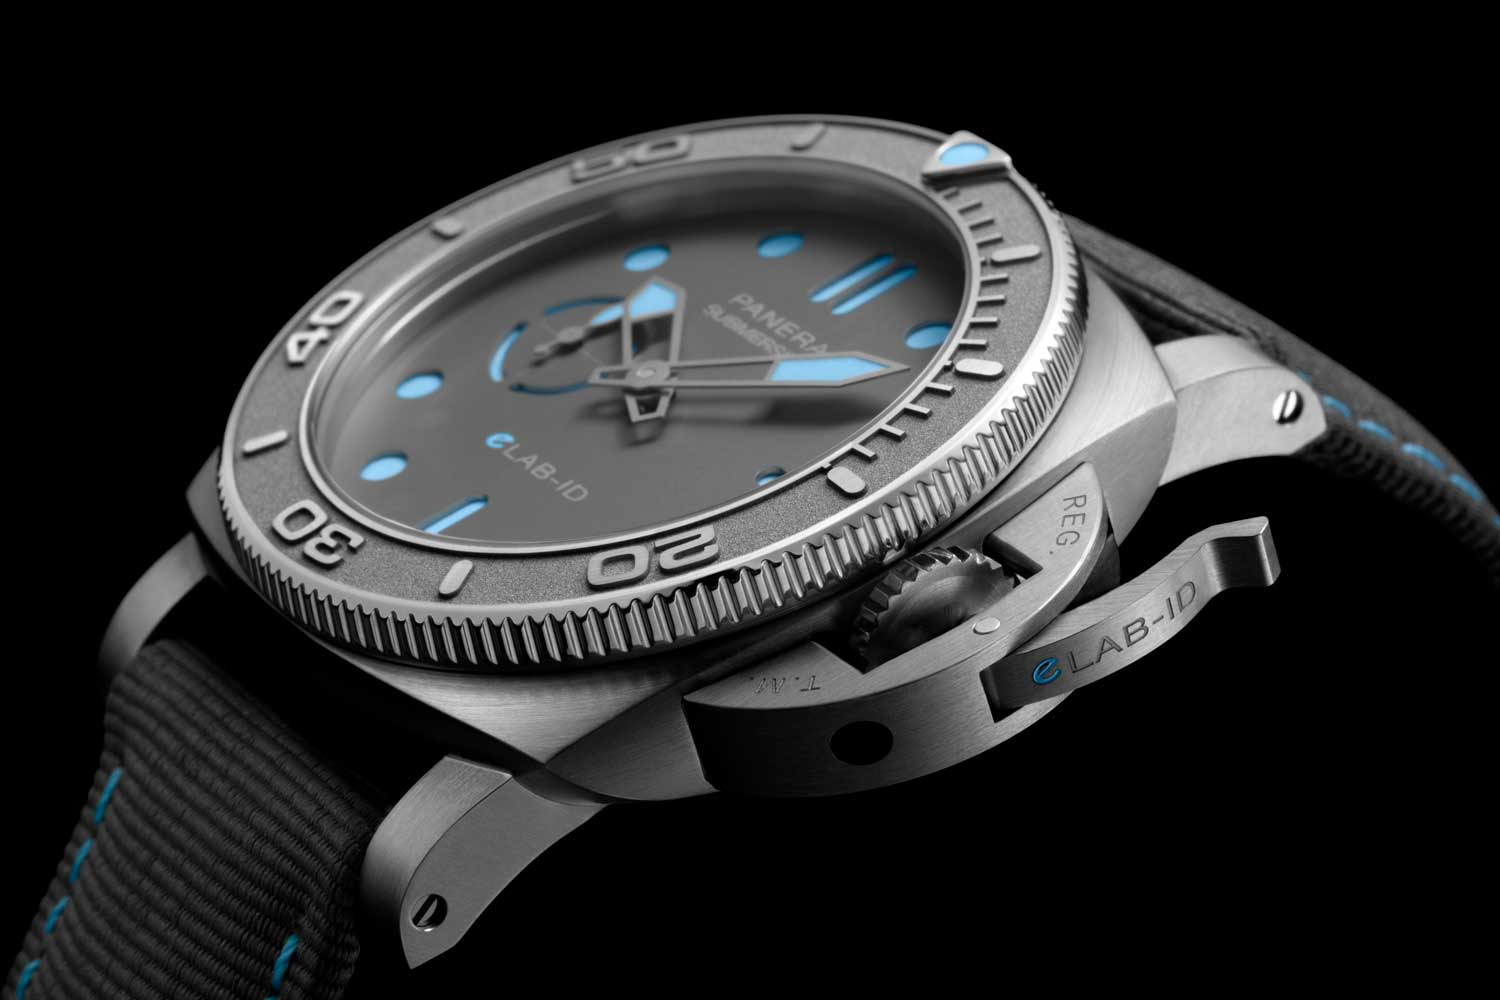 The Panerai Submersible eLAB-ID has its case, dial and even the bridges of its movement made of recycled EcoTitanium